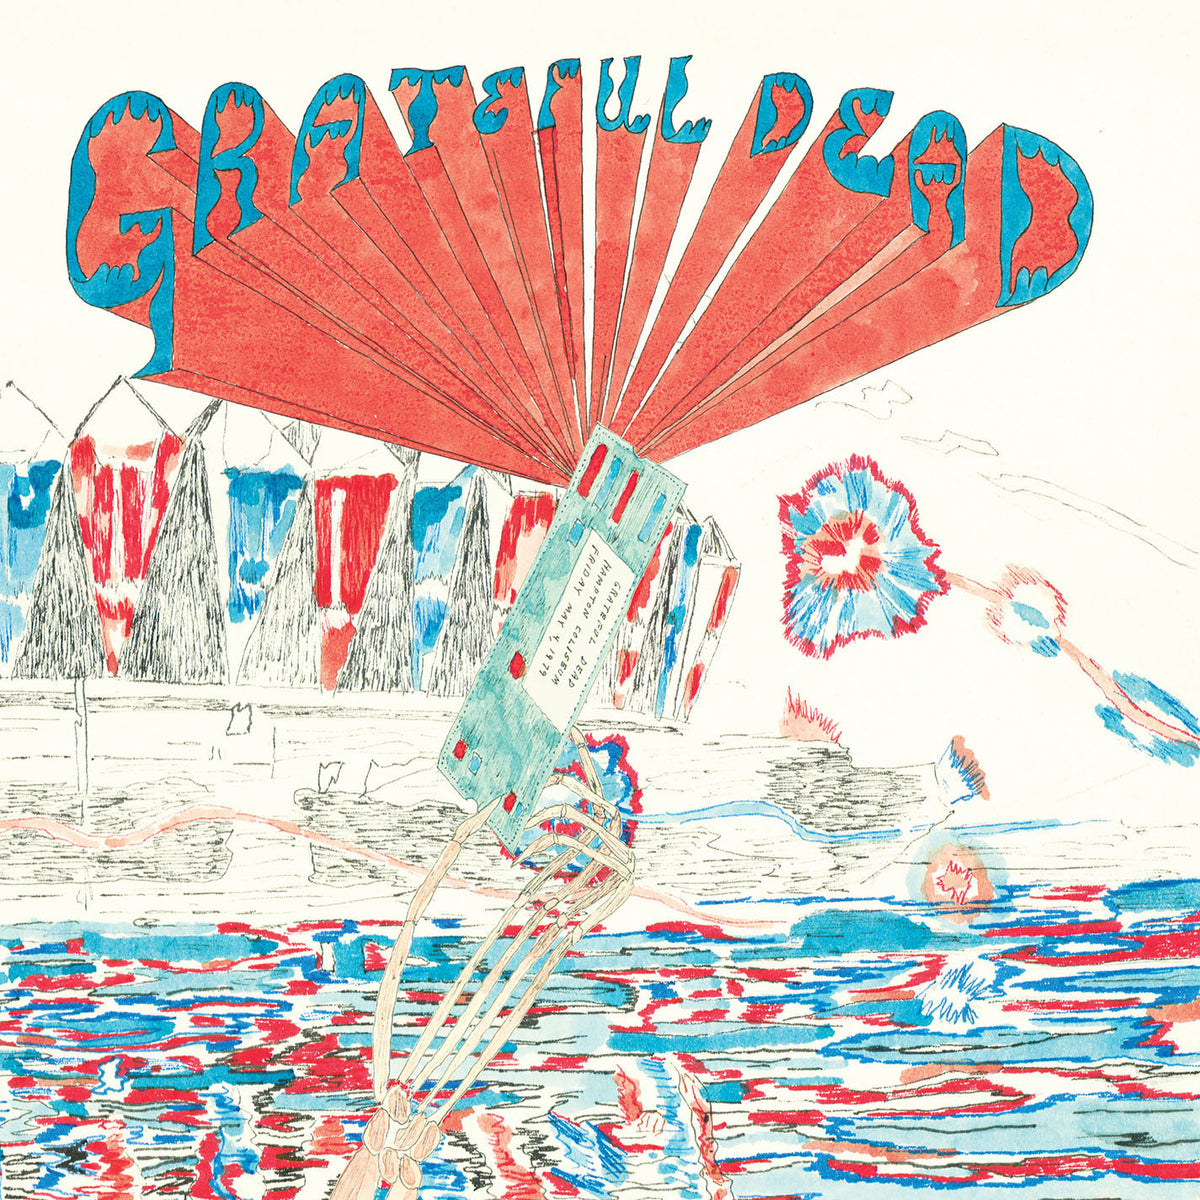 Grateful Dead: Live at Hampton Colliseum 180g Vinyl 2LP (Record Store Day 2014)